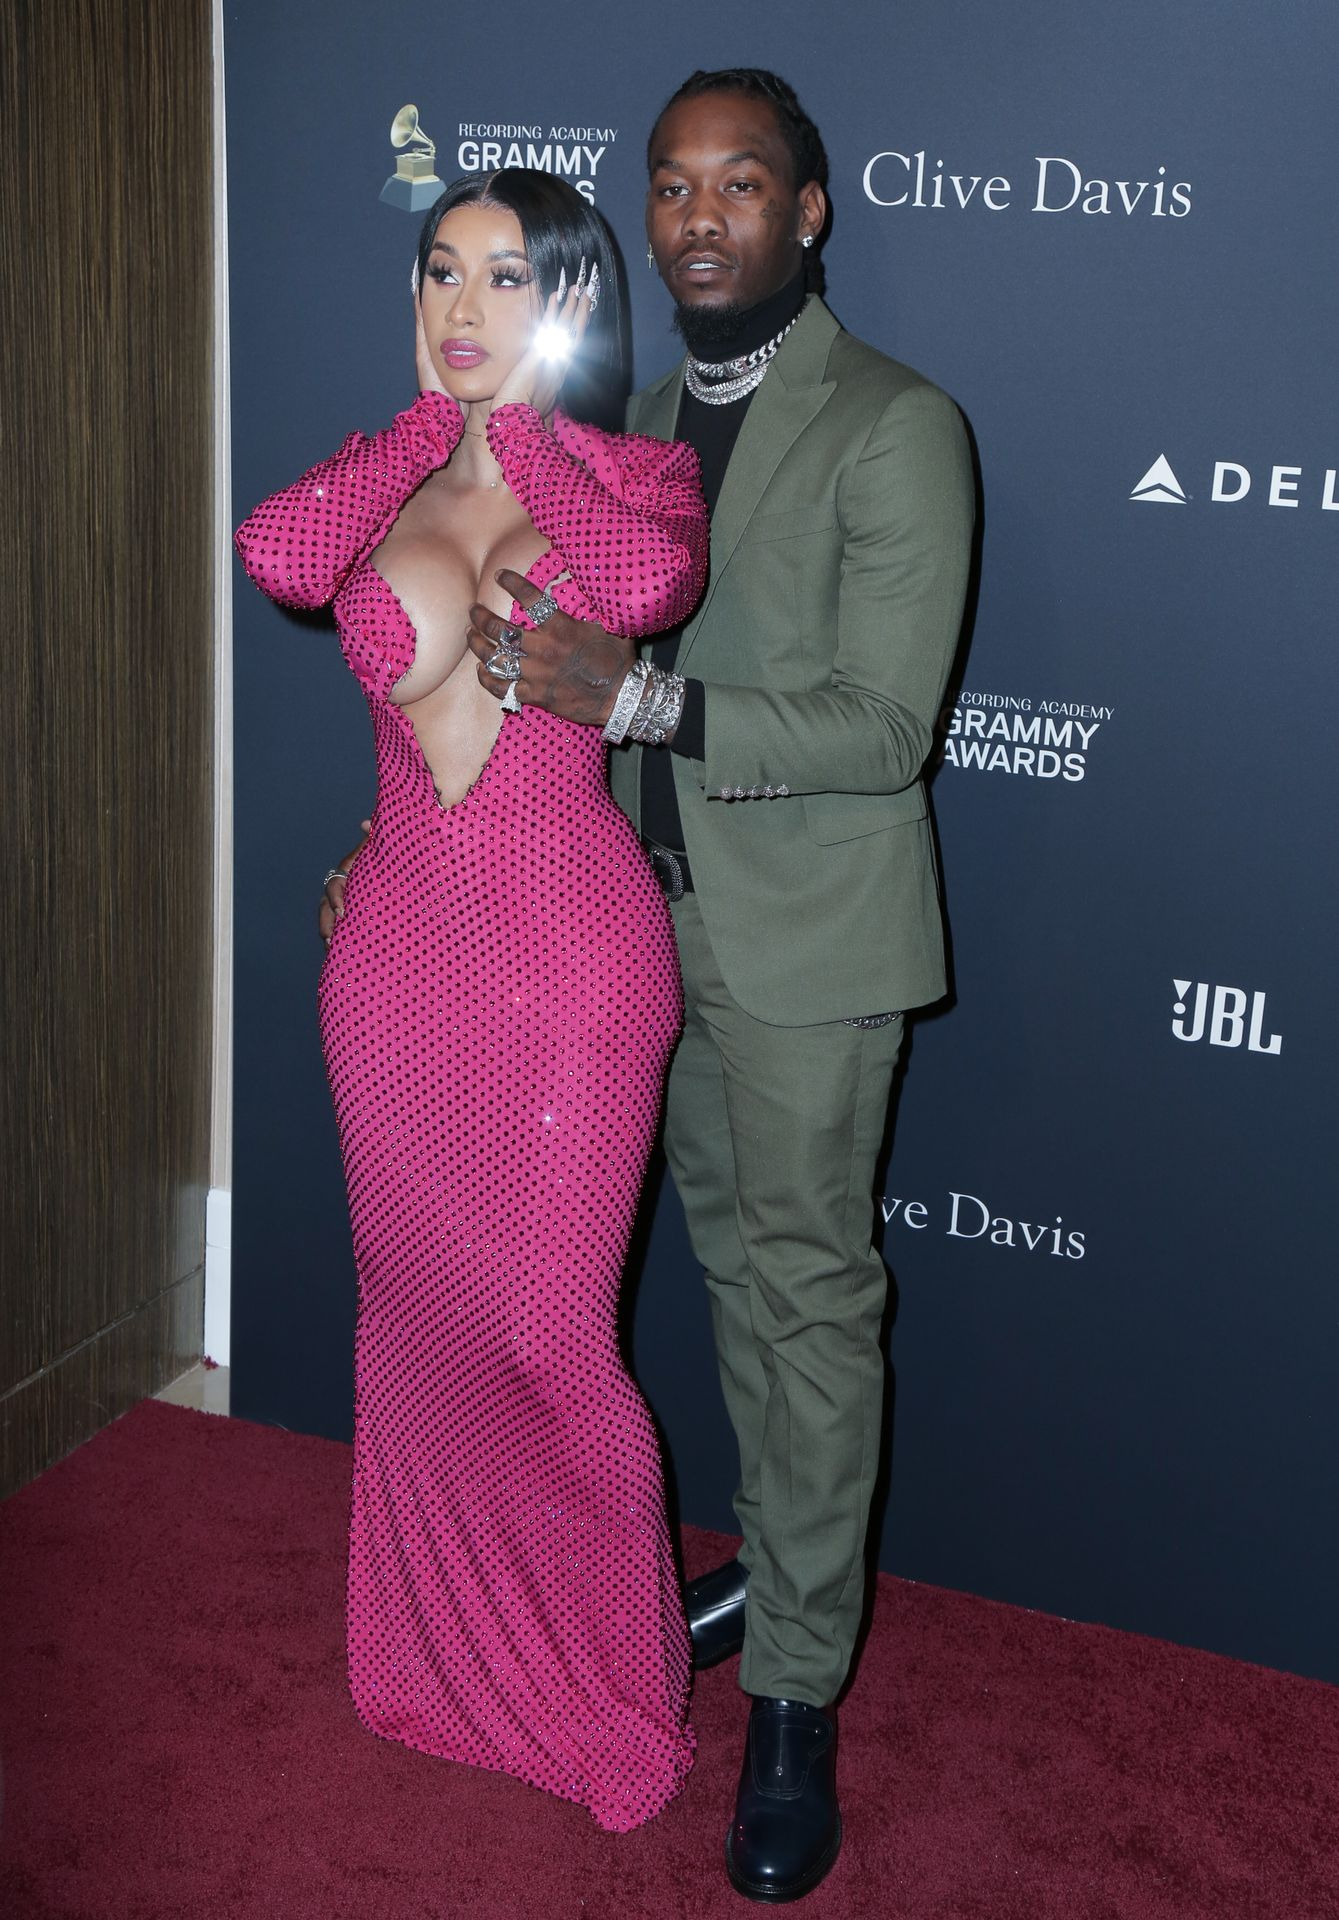 Offset Covers Cardi B's Boobs To Avoid Wardrobe Malfunction At Clive Davis Pre Grammy Party 0108